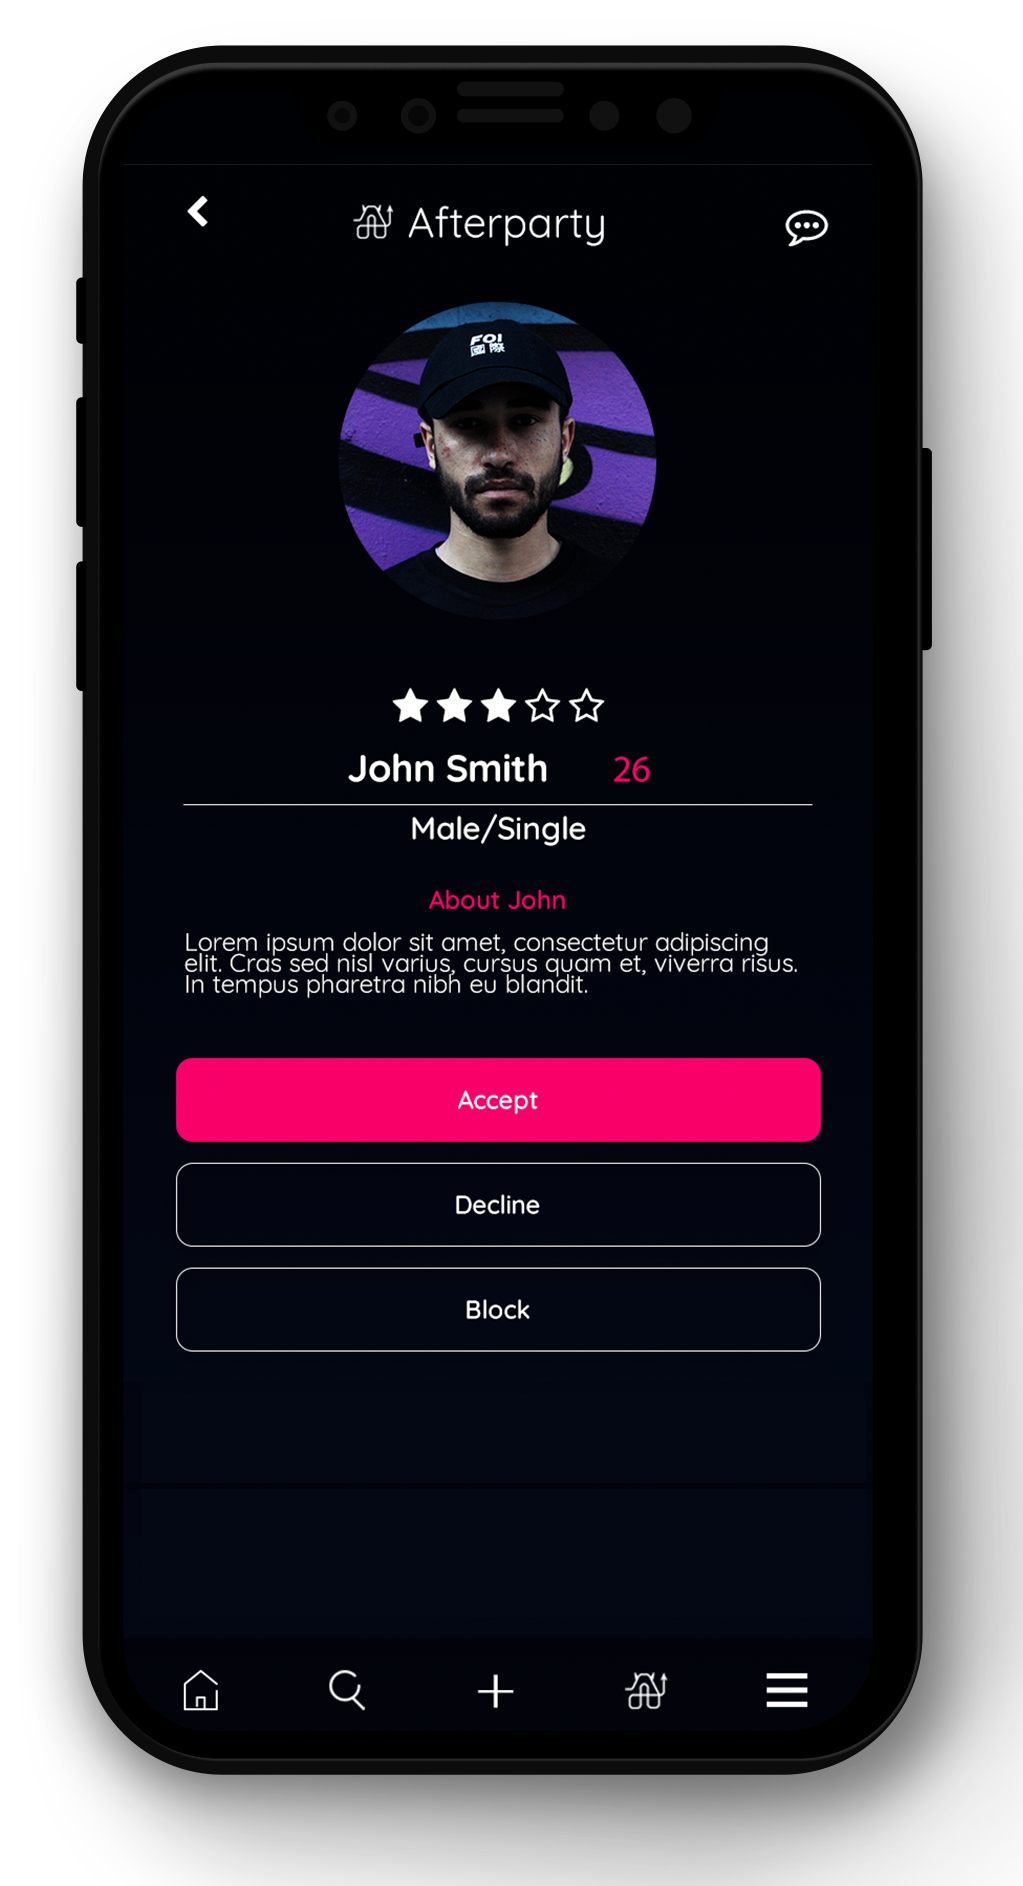 AfterParty mobile app